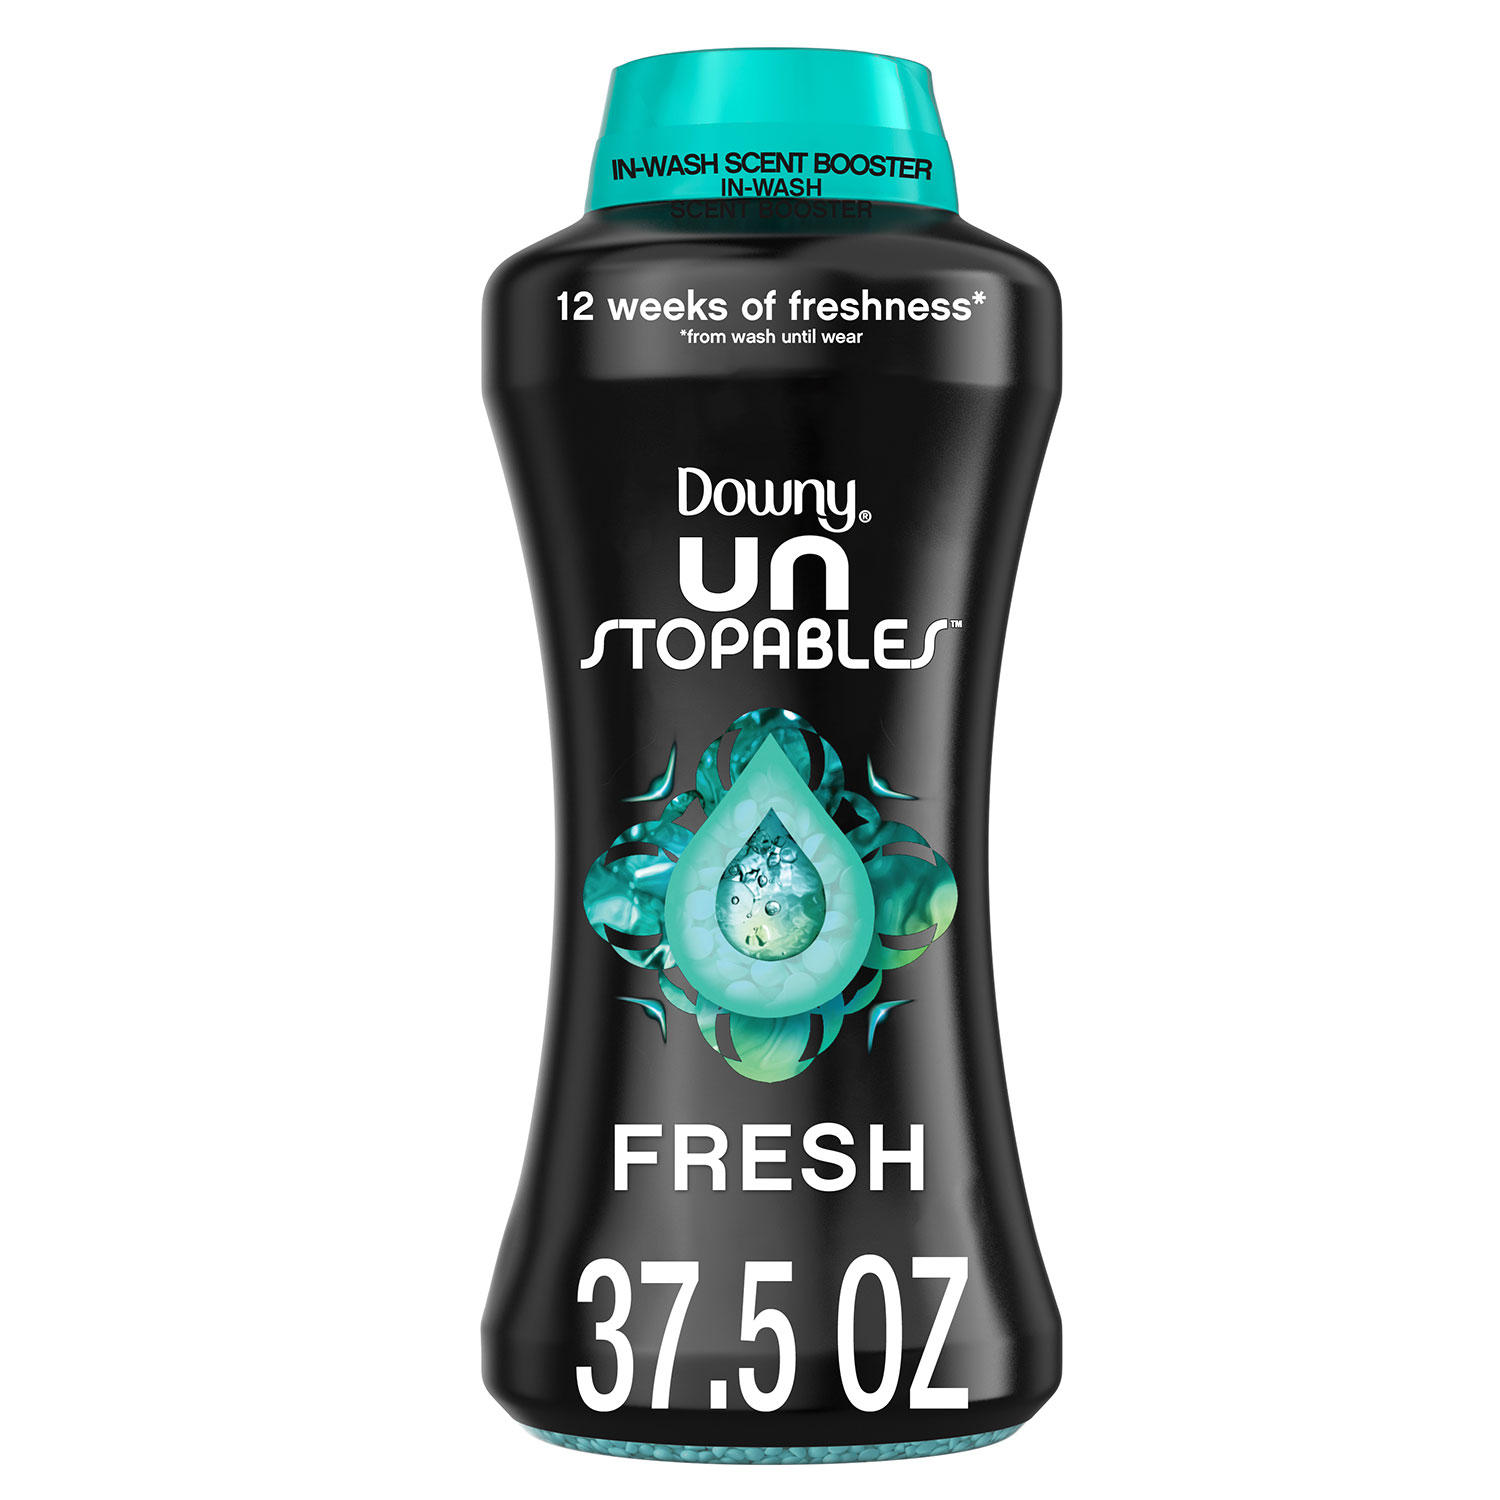 Downy Unstopables In-Wash Scent Booster Beads, Fresh (37.5 oz.)